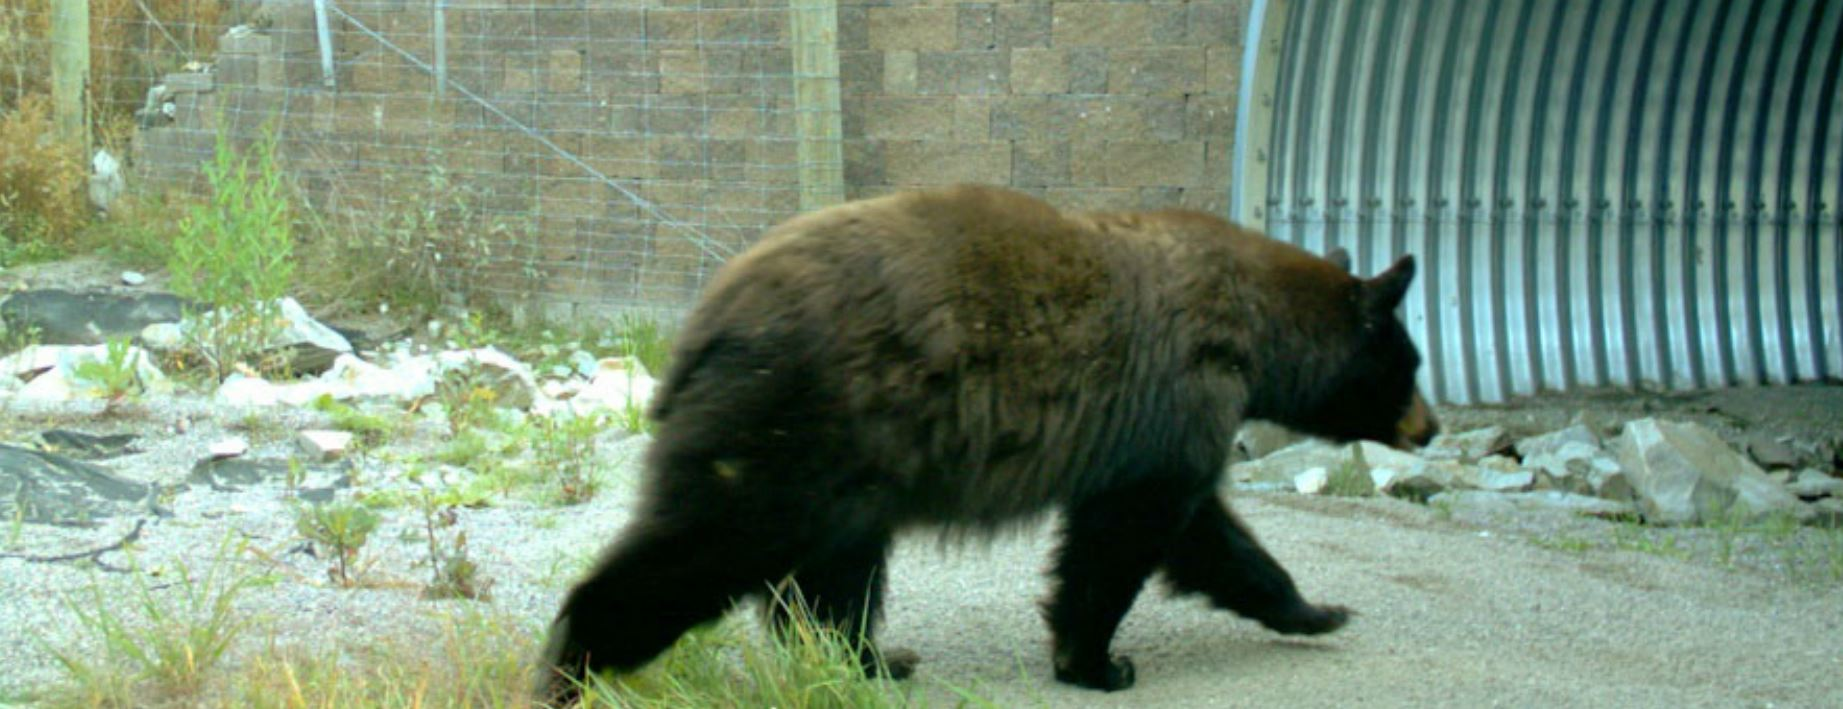 A bear using the I-93 underpass (photo courtesy of  Peoples Way Wildlife Crossing )